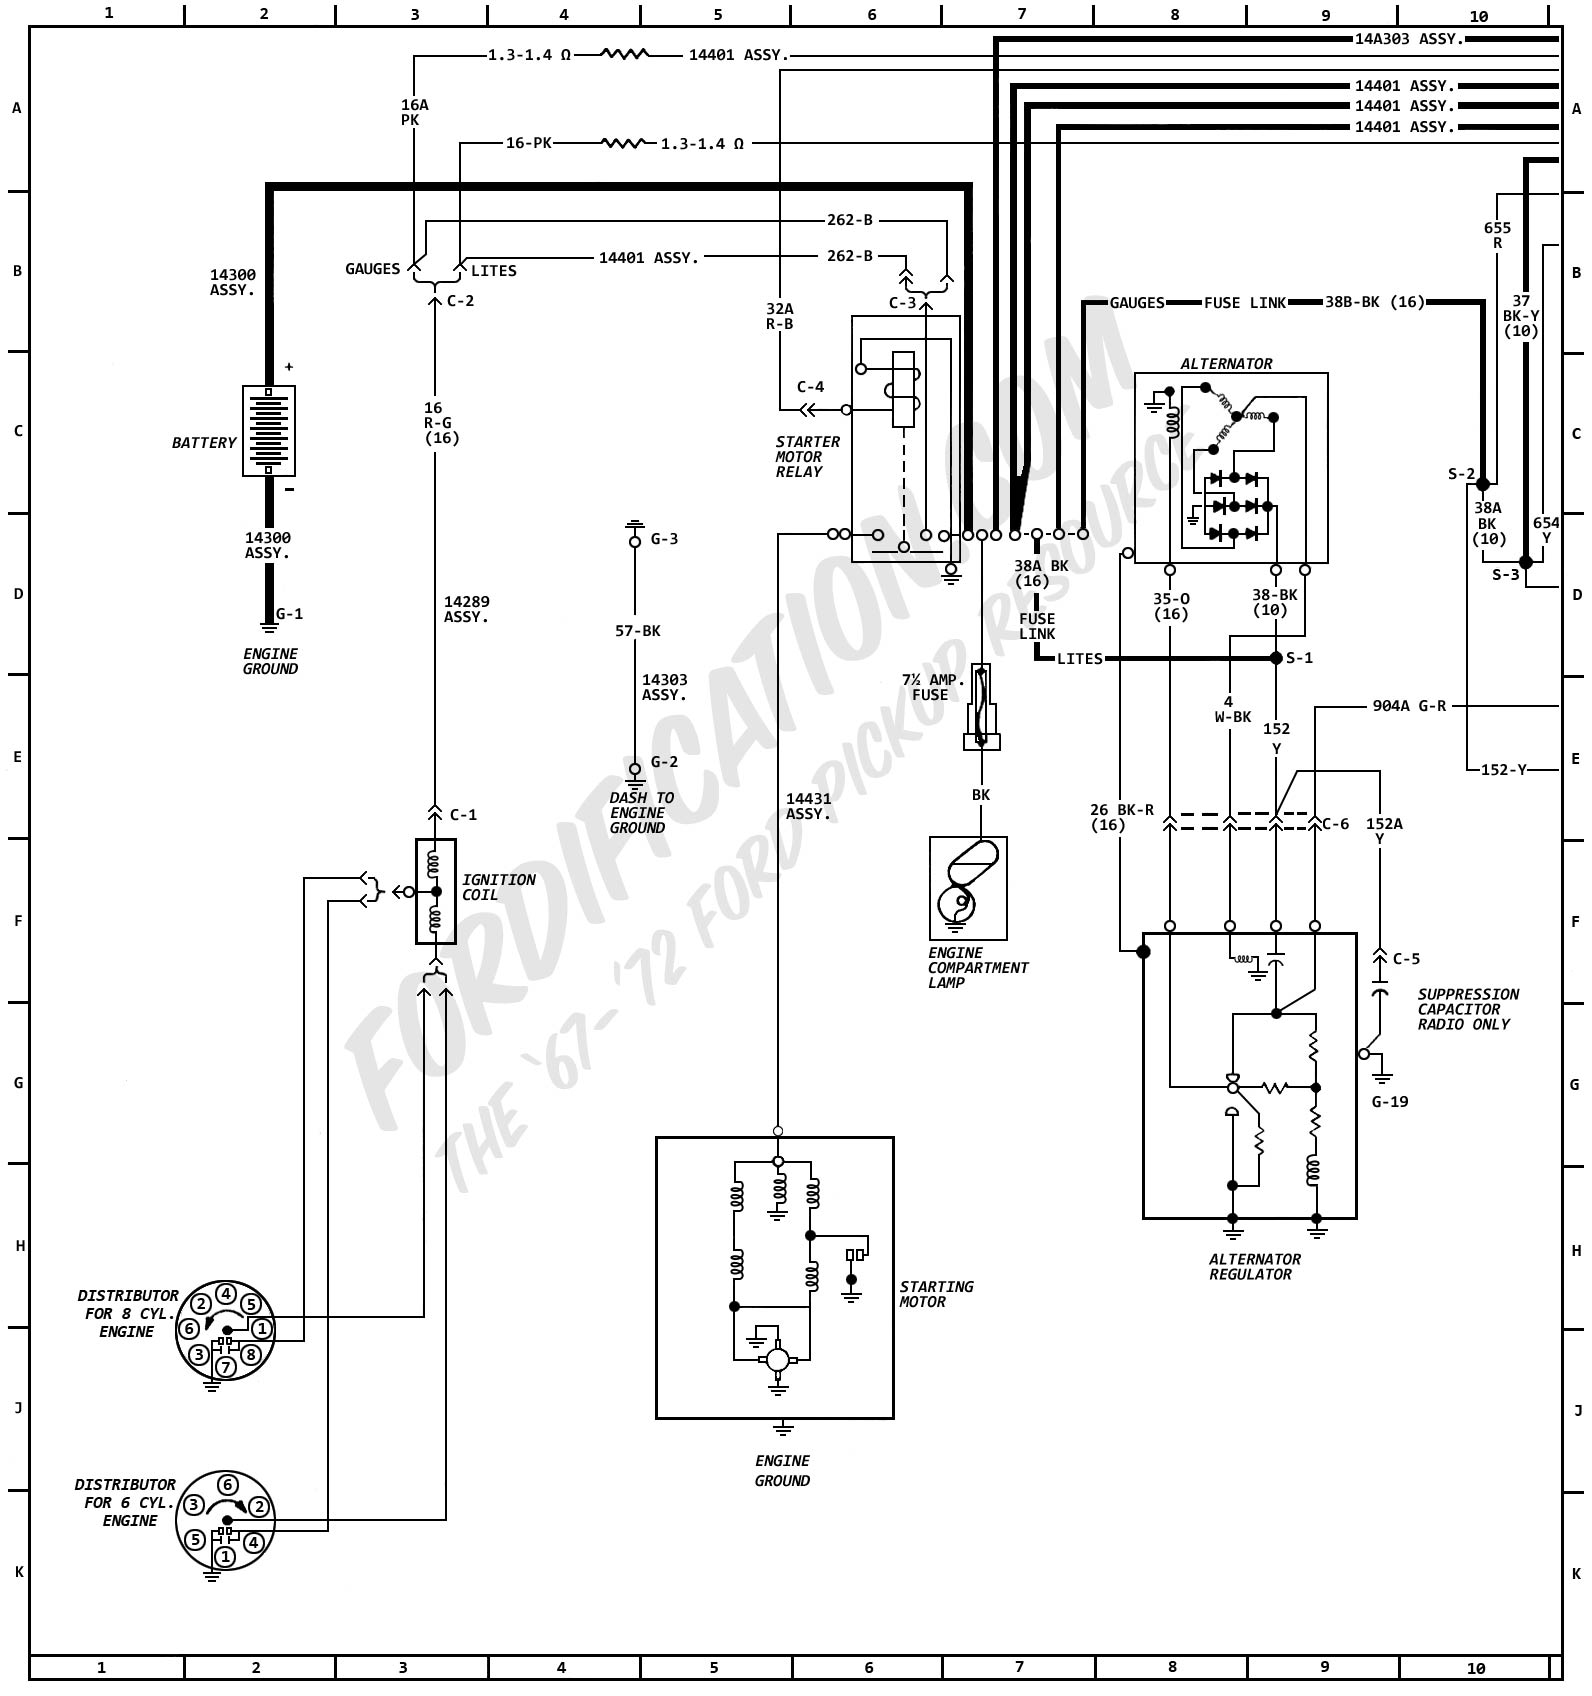 1972 Ford Truck Wiring Diagrams - FORDification.com  Dodge Pickup Wiring Diagram For on dodge pickup headlights, 2001 dodge wiring diagram, ford thunderbird wiring diagram, dodge radio wiring diagram, dodge challenger wiring diagram, dodge engine wiring diagram, dodge starter relay wiring diagram, dodge pickup suspension, dodge magnum wiring diagram, dodge rv wiring diagram, dodge viper wiring diagram, ford aerostar wiring diagram, dodge ram wiring diagram, pontiac fiero wiring diagram, oldsmobile cutlass wiring diagram, dodge pickup wiper motor, 2000 dodge wiring diagram, dodge omni wiring diagram, dodge aries wiring diagram, cadillac eldorado wiring diagram,